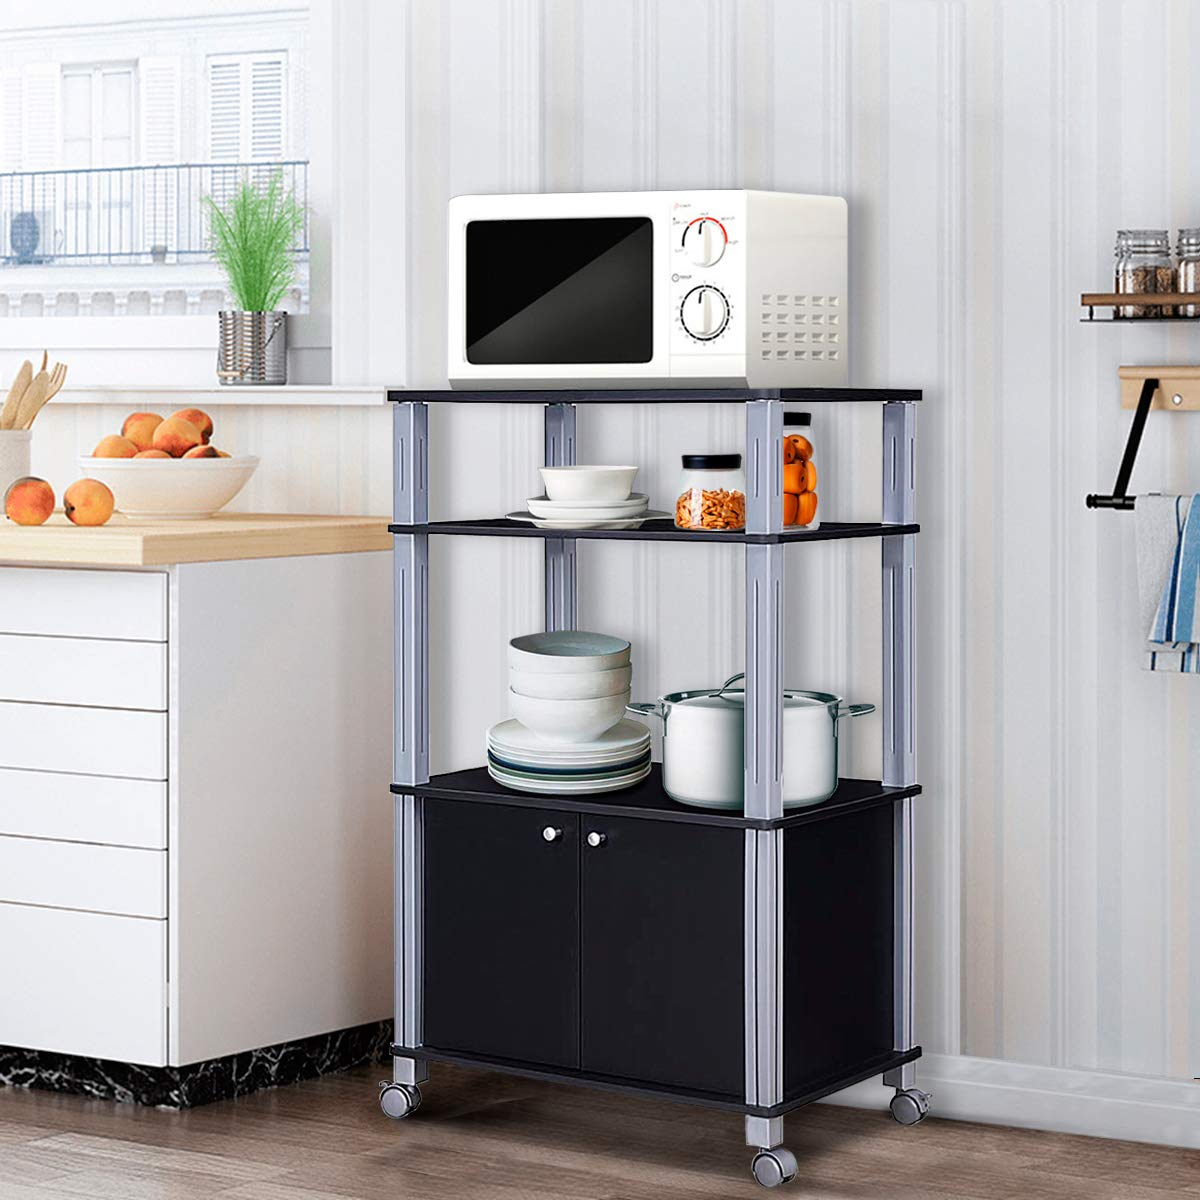 Giantex Rolling Kitchen Baker's Rack Microwave Oven Stand Utility Cart Multifunctional Display Shelf on Wheels with 2-Tier Shelf and Cabinet Spice Organizer for Kitchen Dining Room Furniture (Black) by Giantex (Image #2)